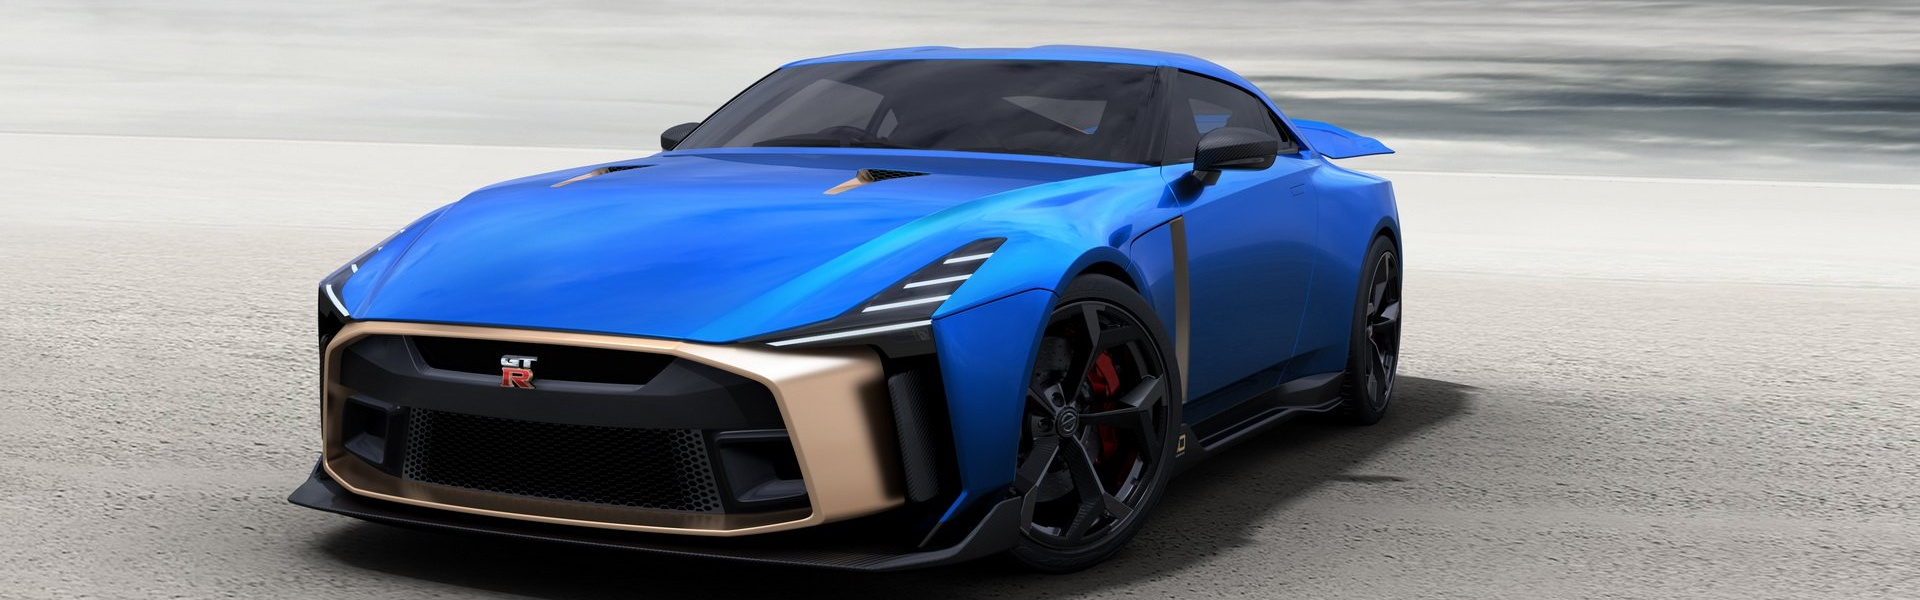 nissan-gt-r50-italdesign-production-model-1.jpg